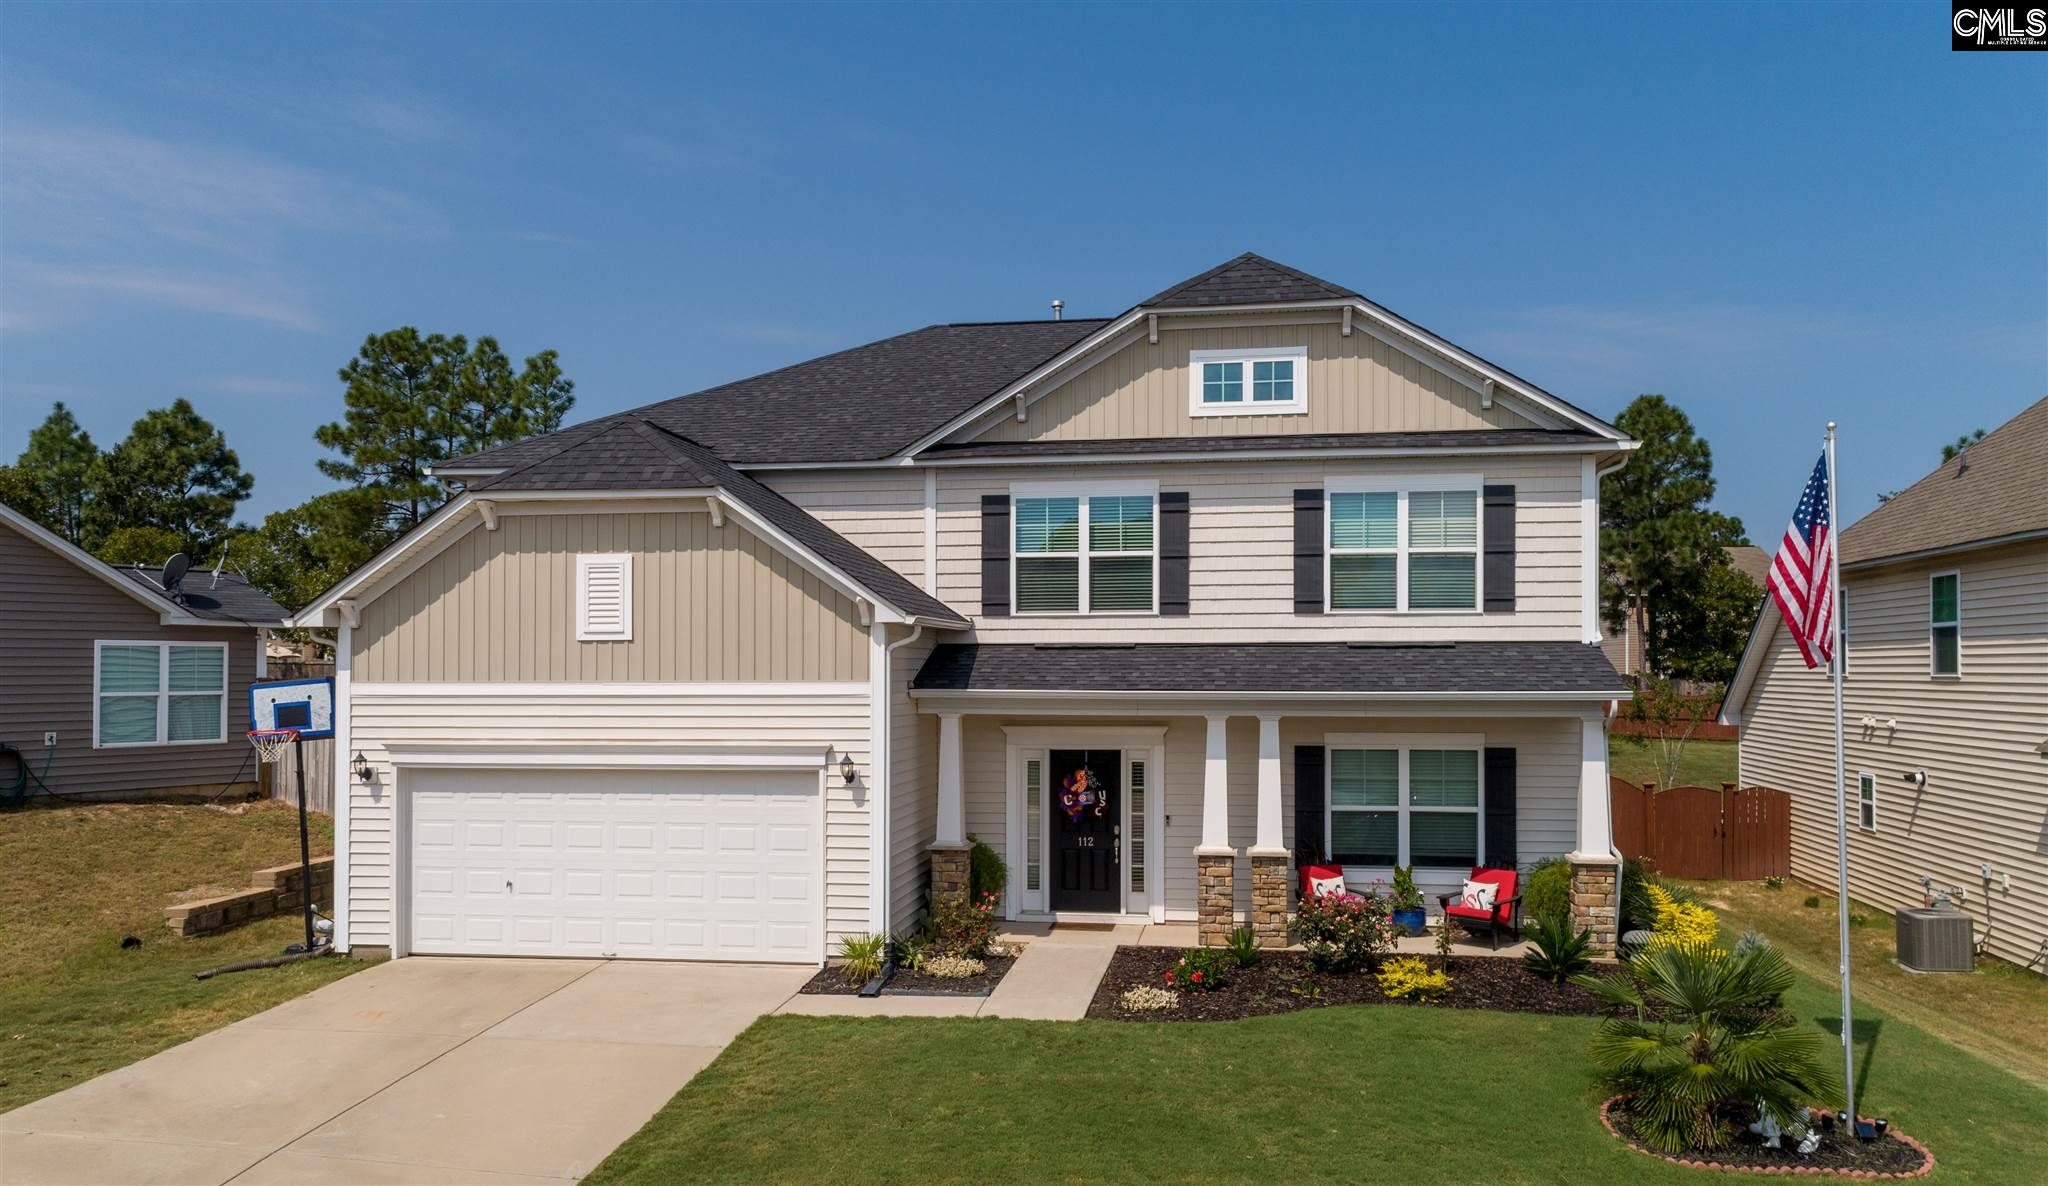 112 Altonia Lee Lexington, SC 29072